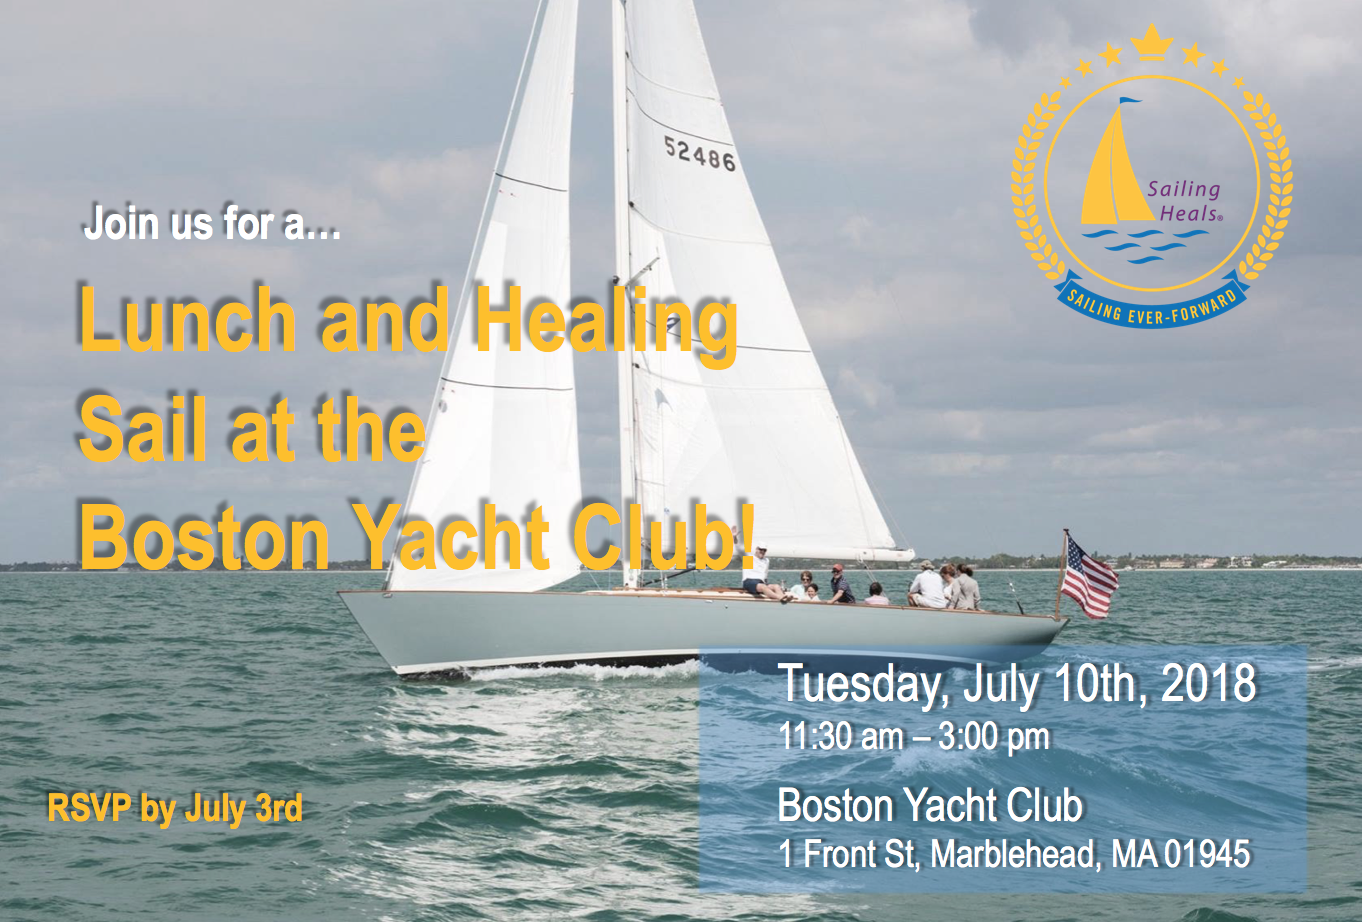 7/10/18 Boston Yacht Club Lunch and Healing Sail